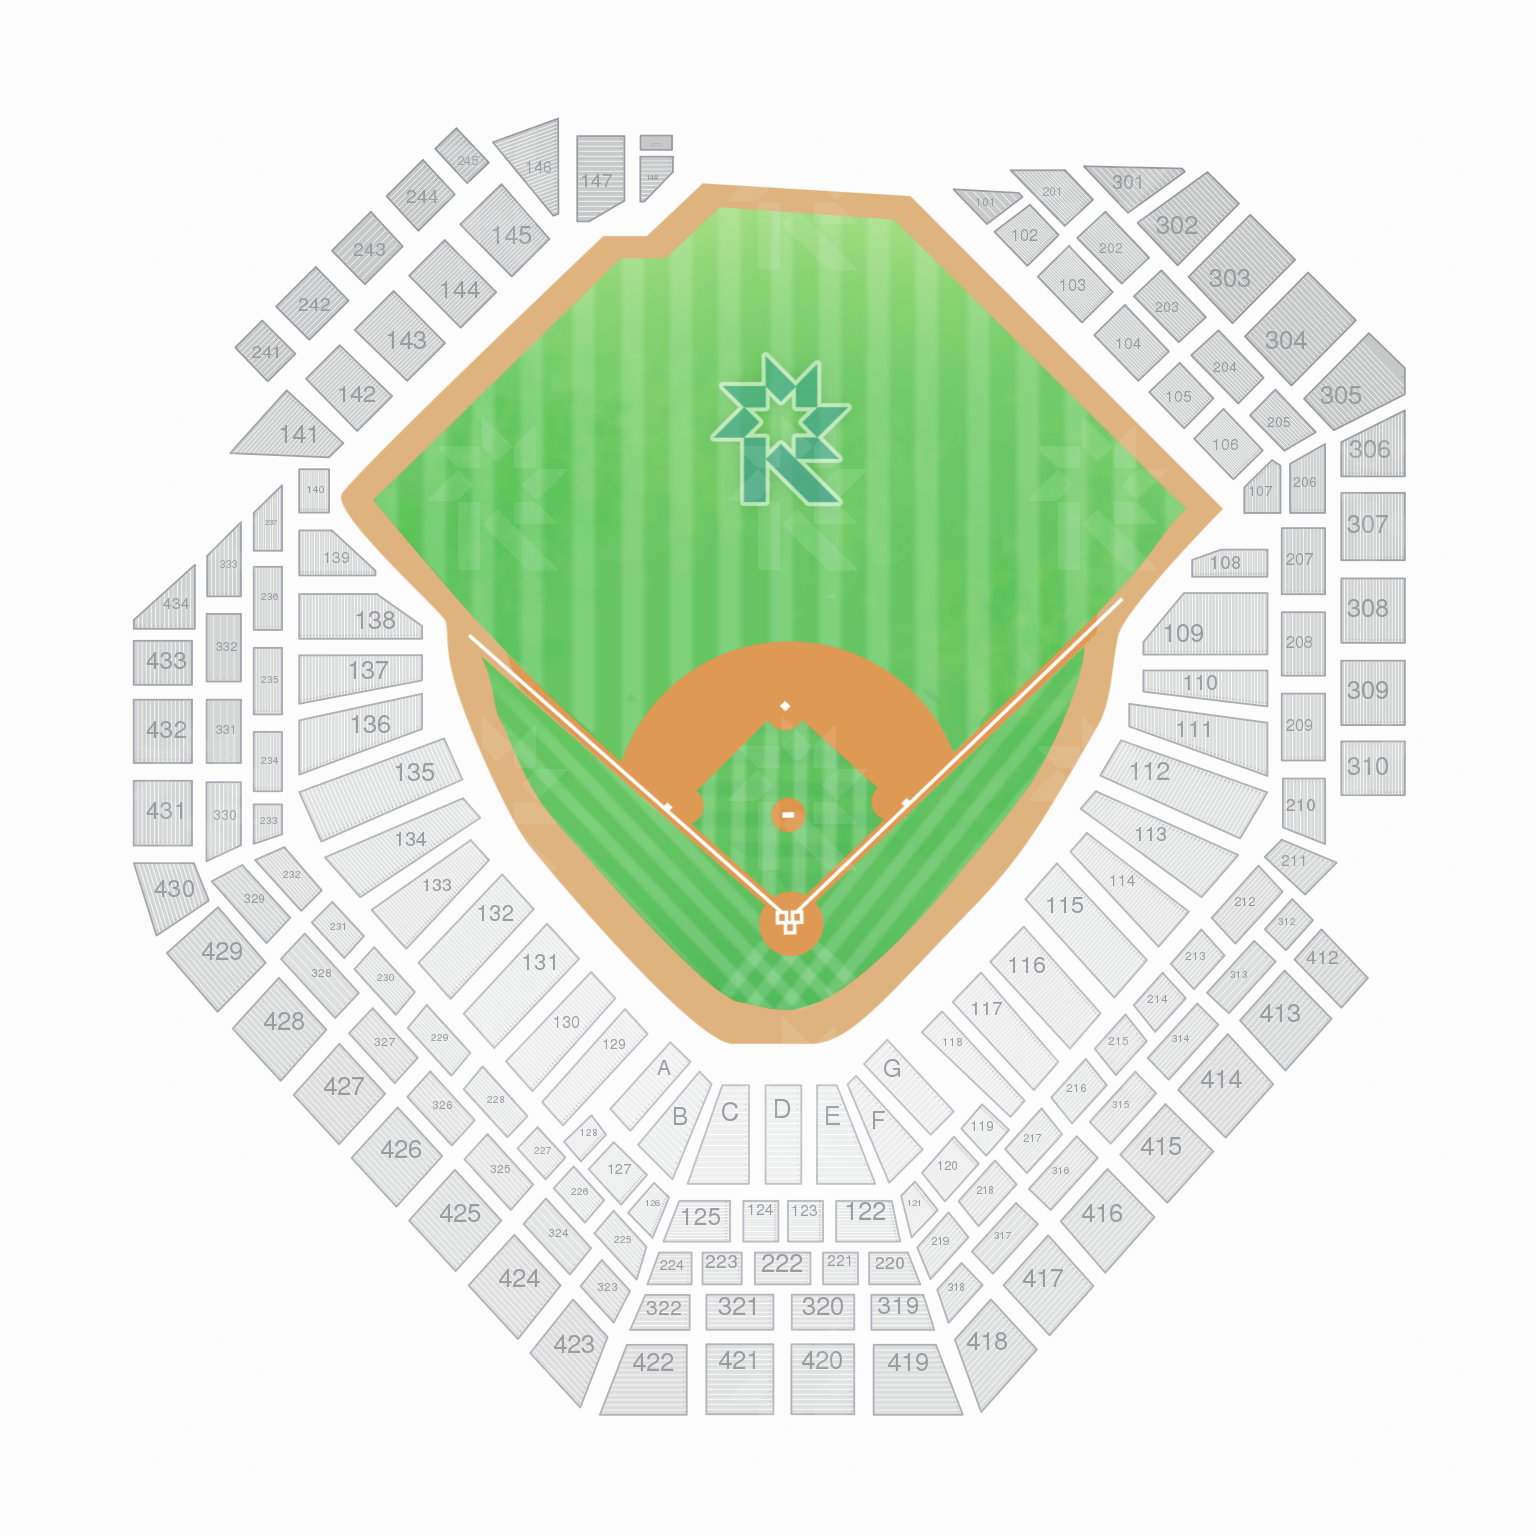 Wrigley Field Seat Map with Seat Numbers New Citizens Bank Park Seating Chart with Seat Numbers